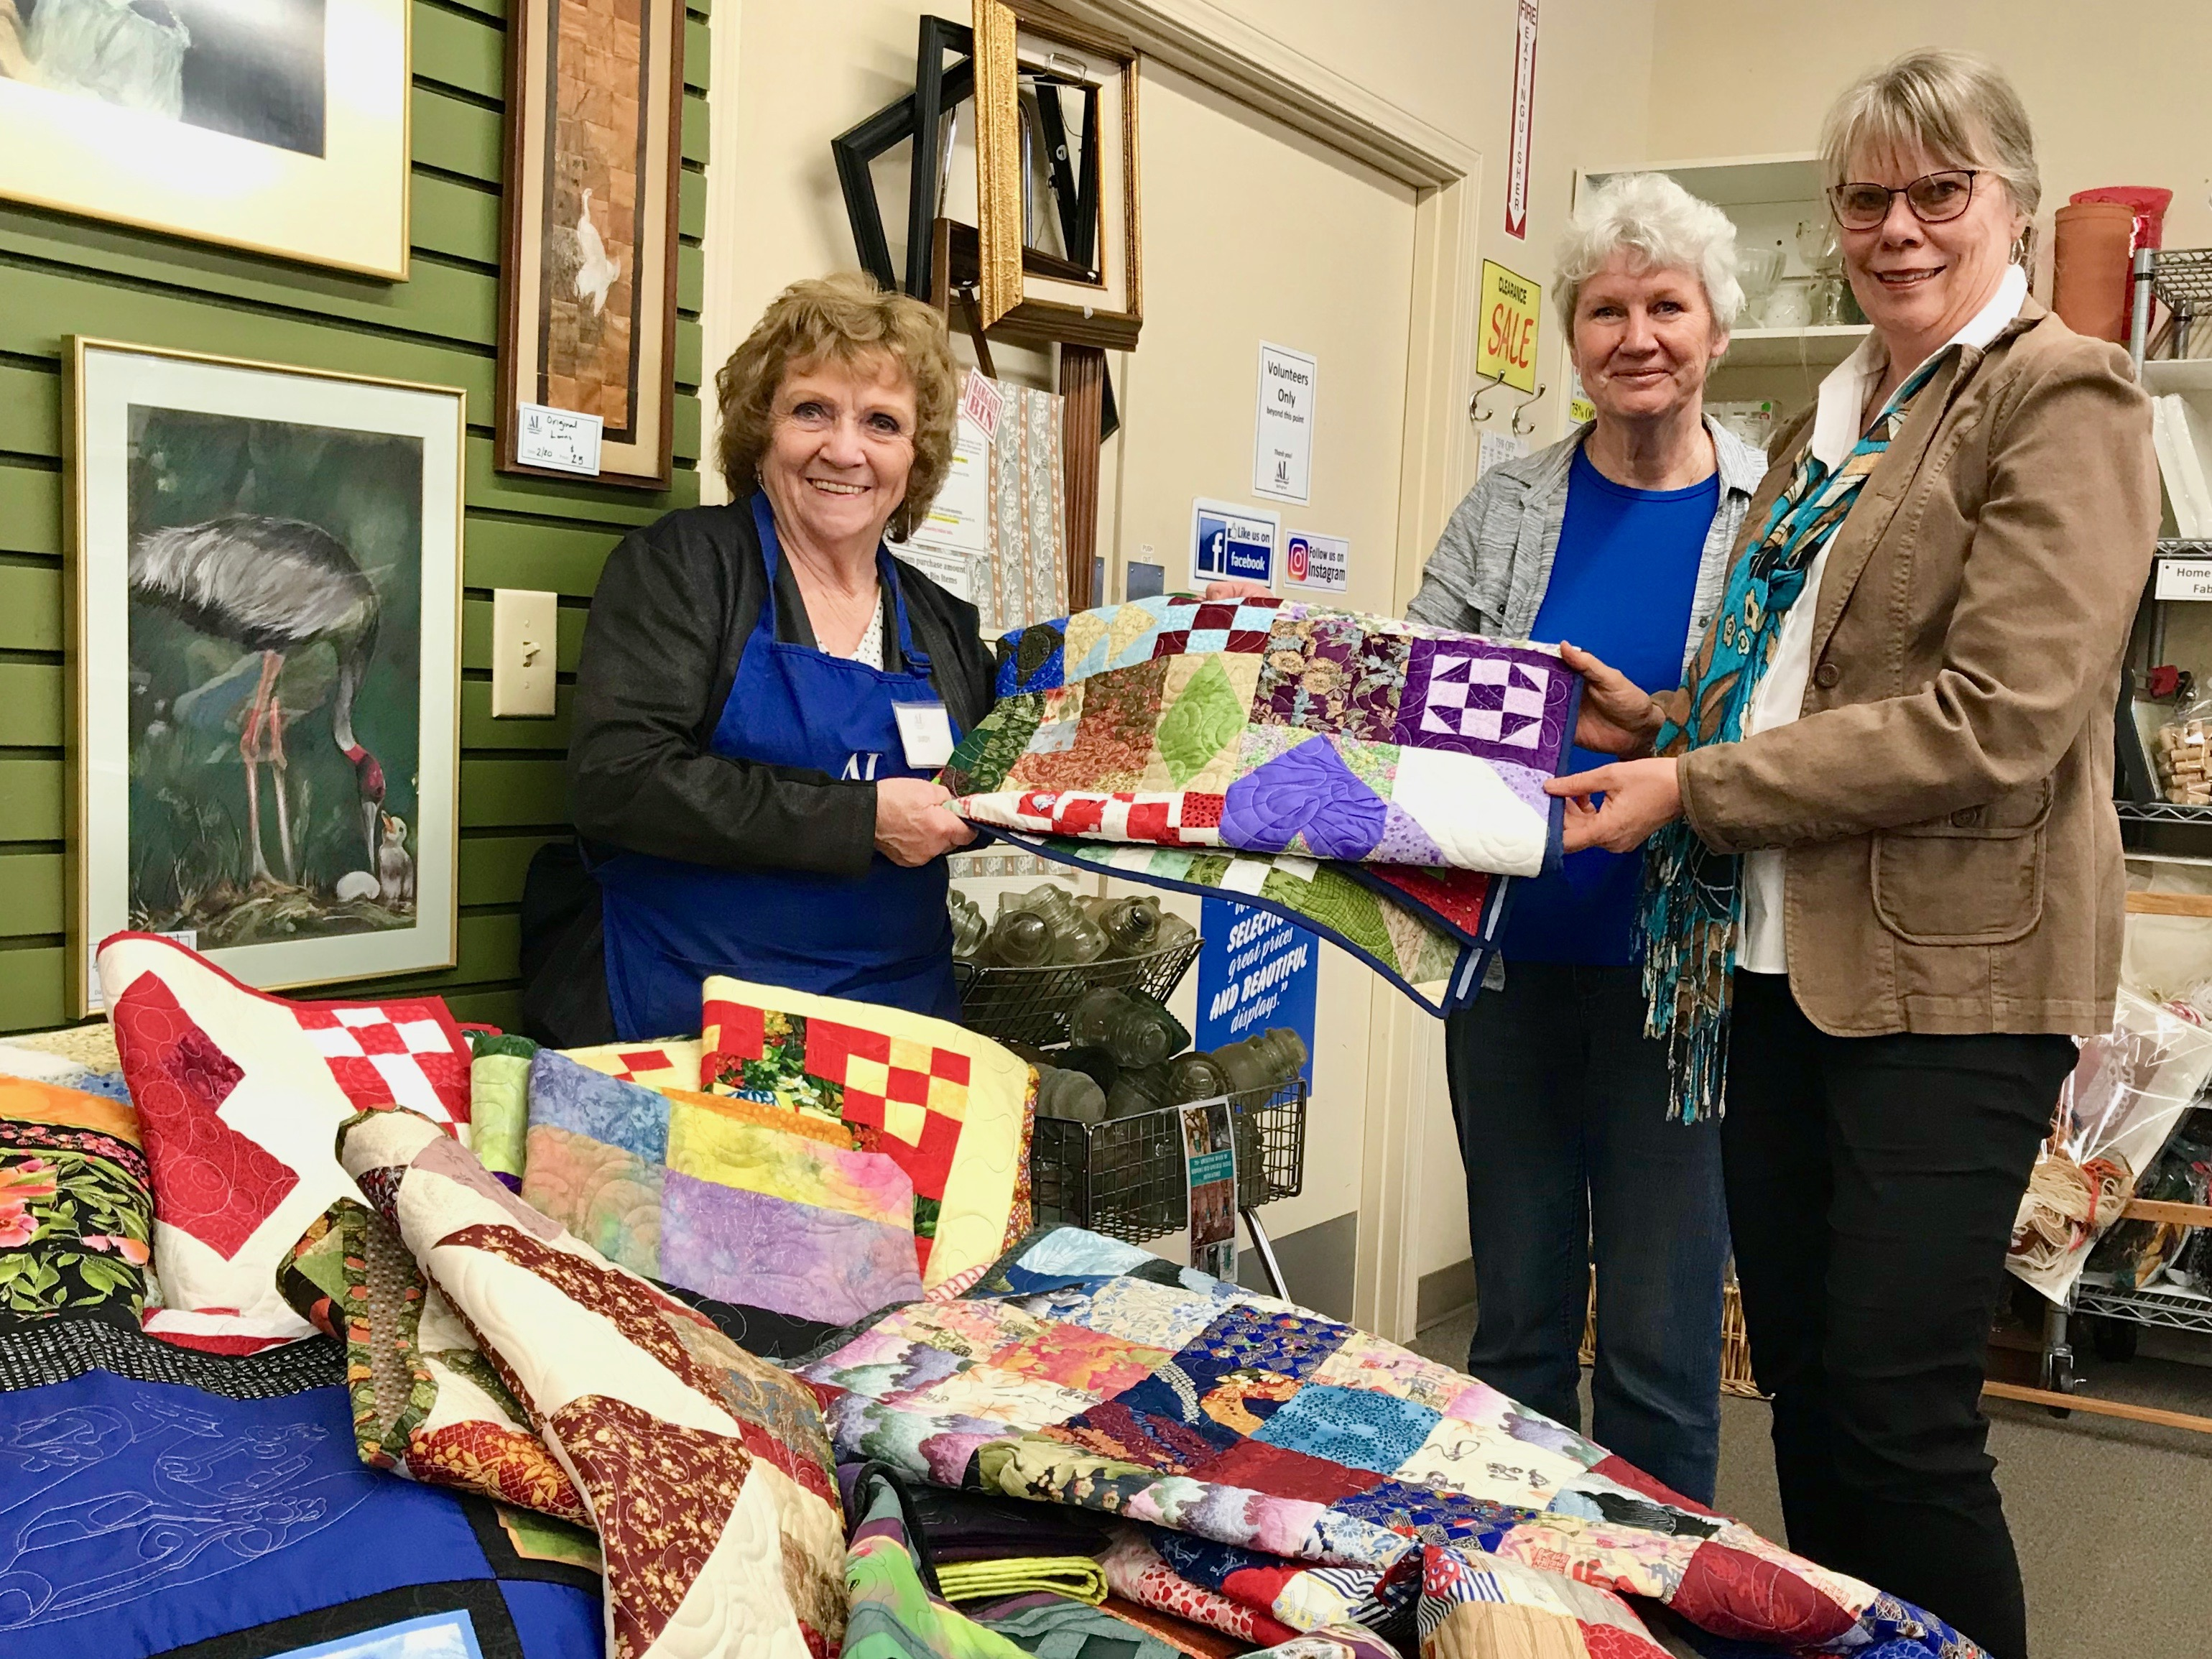 Pieceable Qulilters of Ferndale WA present quilts to Care Center Support program